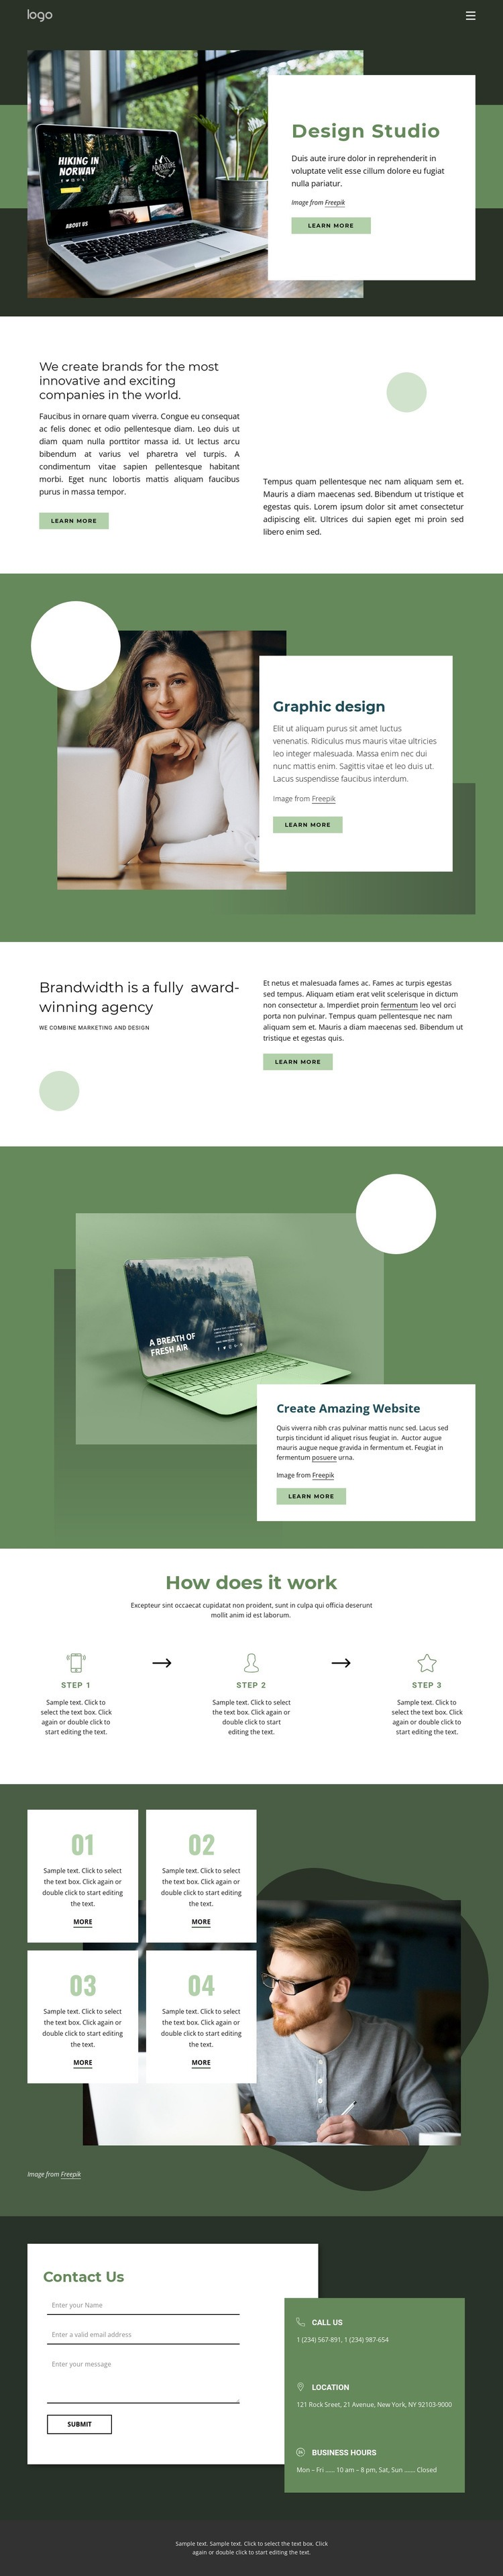 Design inspiration from nature Html Code Example